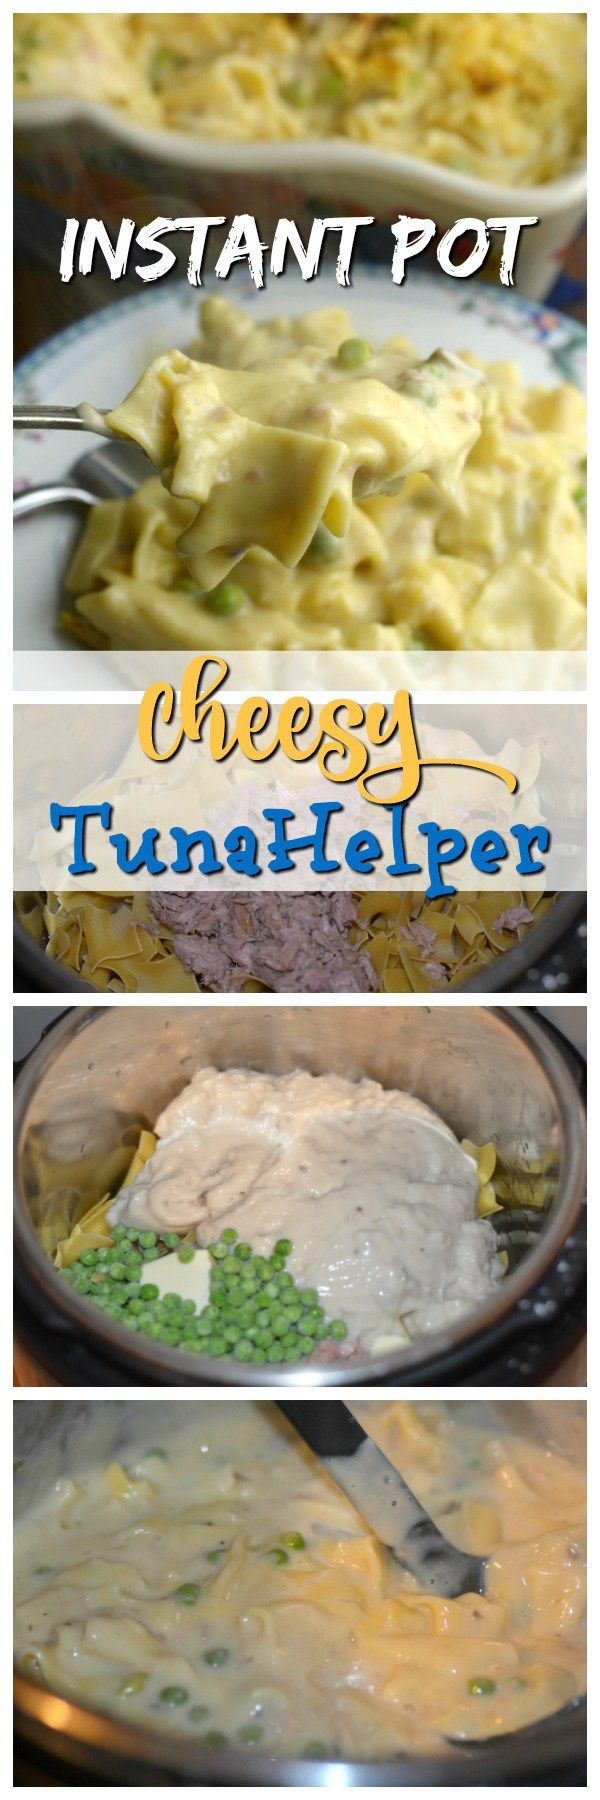 Cheesy & Creamy The perfect quick weeknight meal. Why waste your money on boxed tuna helper when you can make it yourself in 4 minutes.